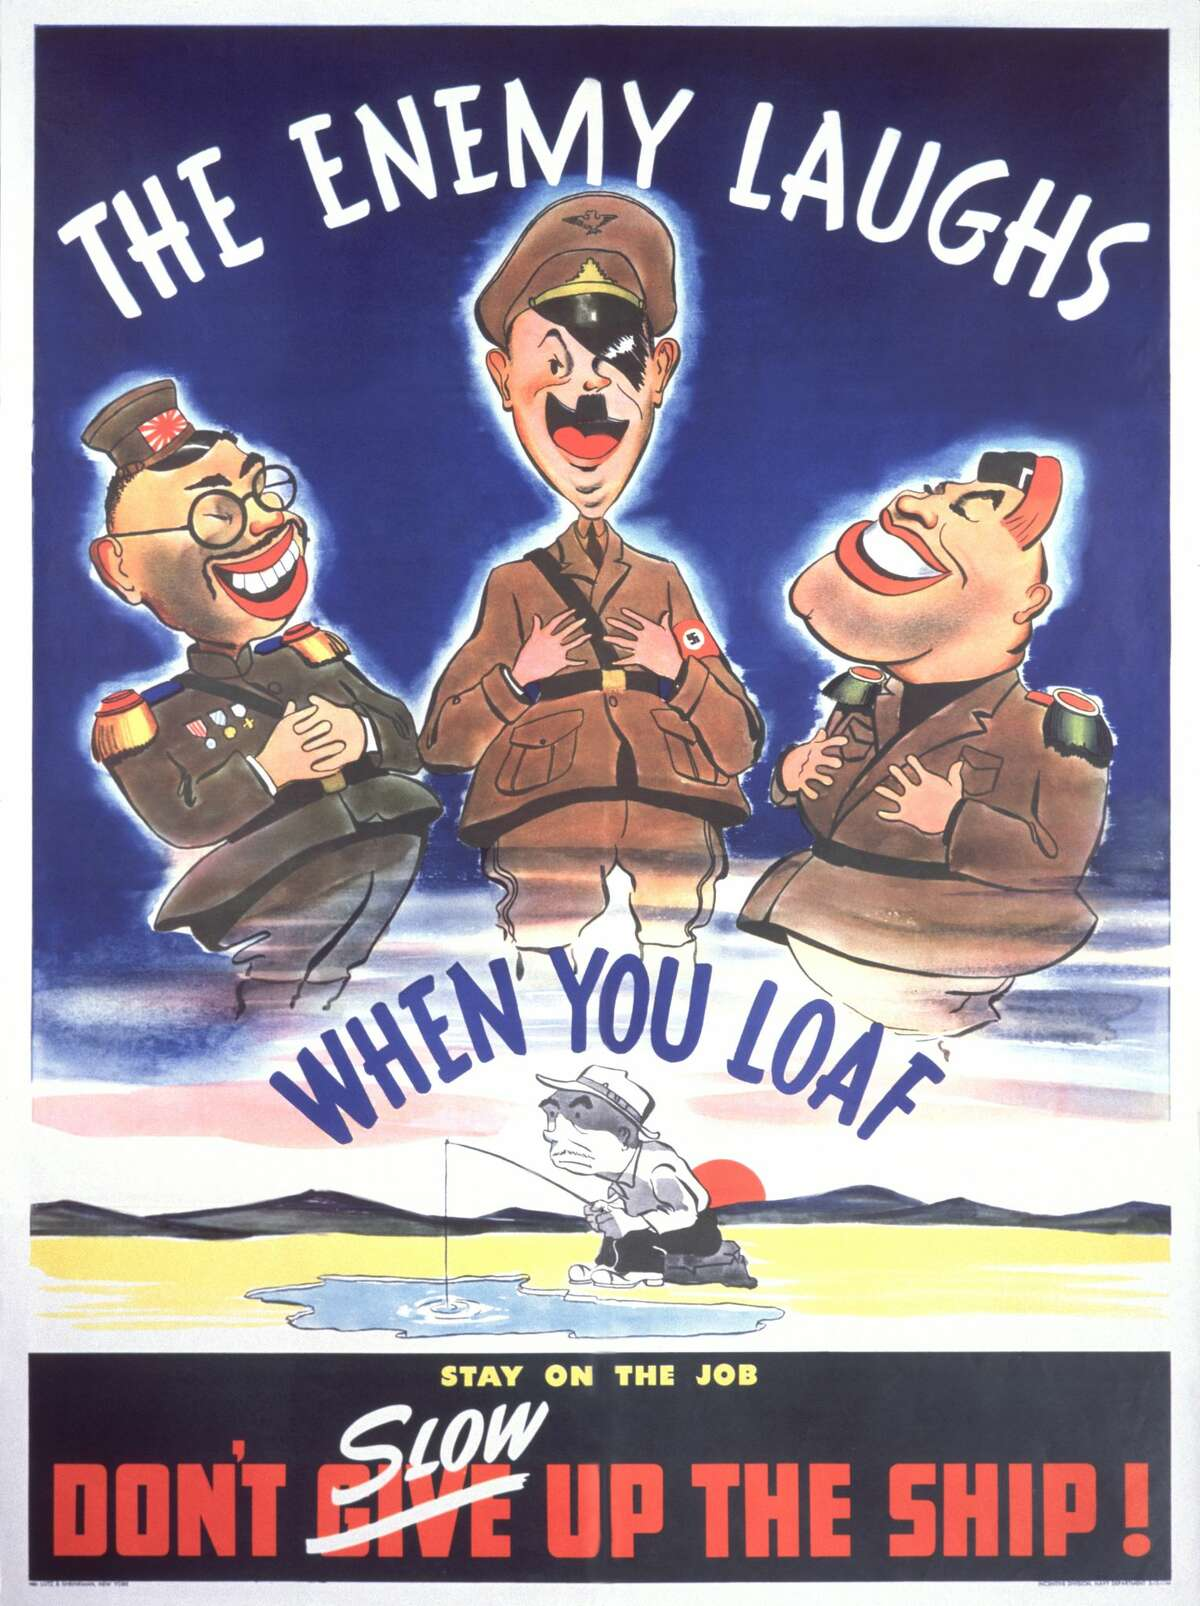 The U.S. Navy warned sailors against laziness, which weakened the navy and aided its enemies. Editor's Note:Propaganda art of the 1940s often depicted images now considered racist or otherwise offensive. They are presented here unedited for educational and historical purposes to demonstrate how these types of images were used to draw up fervor against and hatred for foreign enemies during World War II.